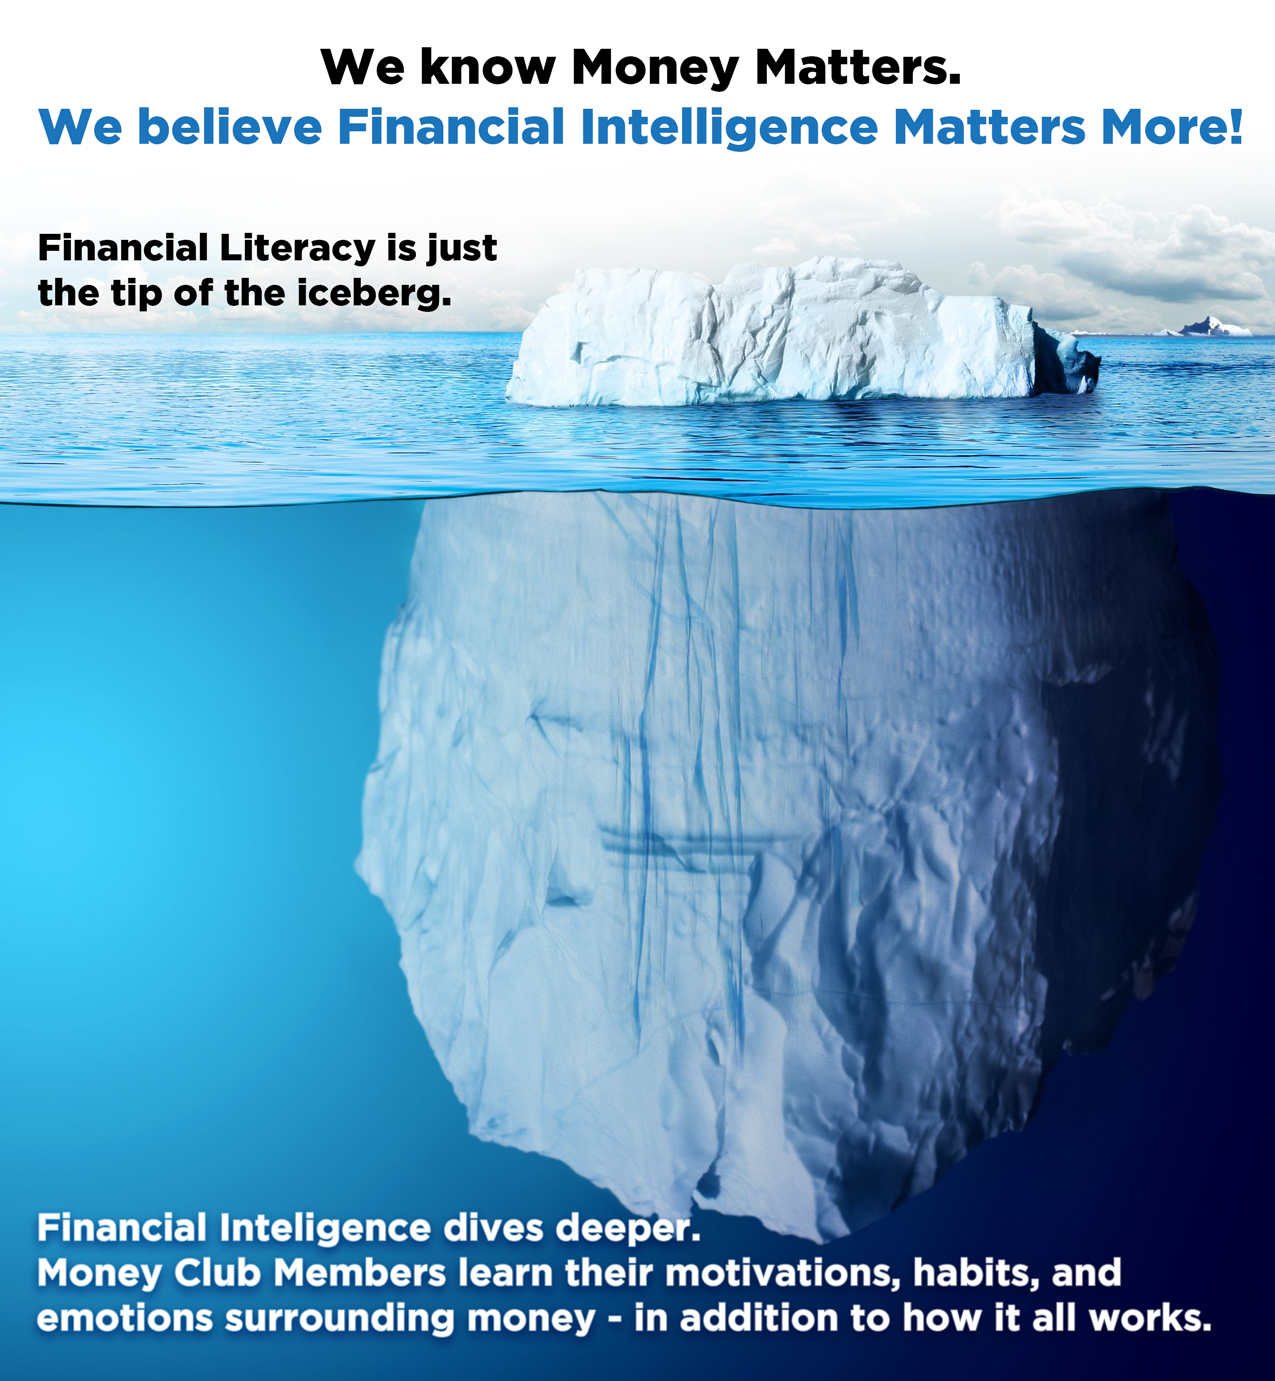 Financial Literacy is just the tip of the iceberg. Financial Intelligence goes deeper!